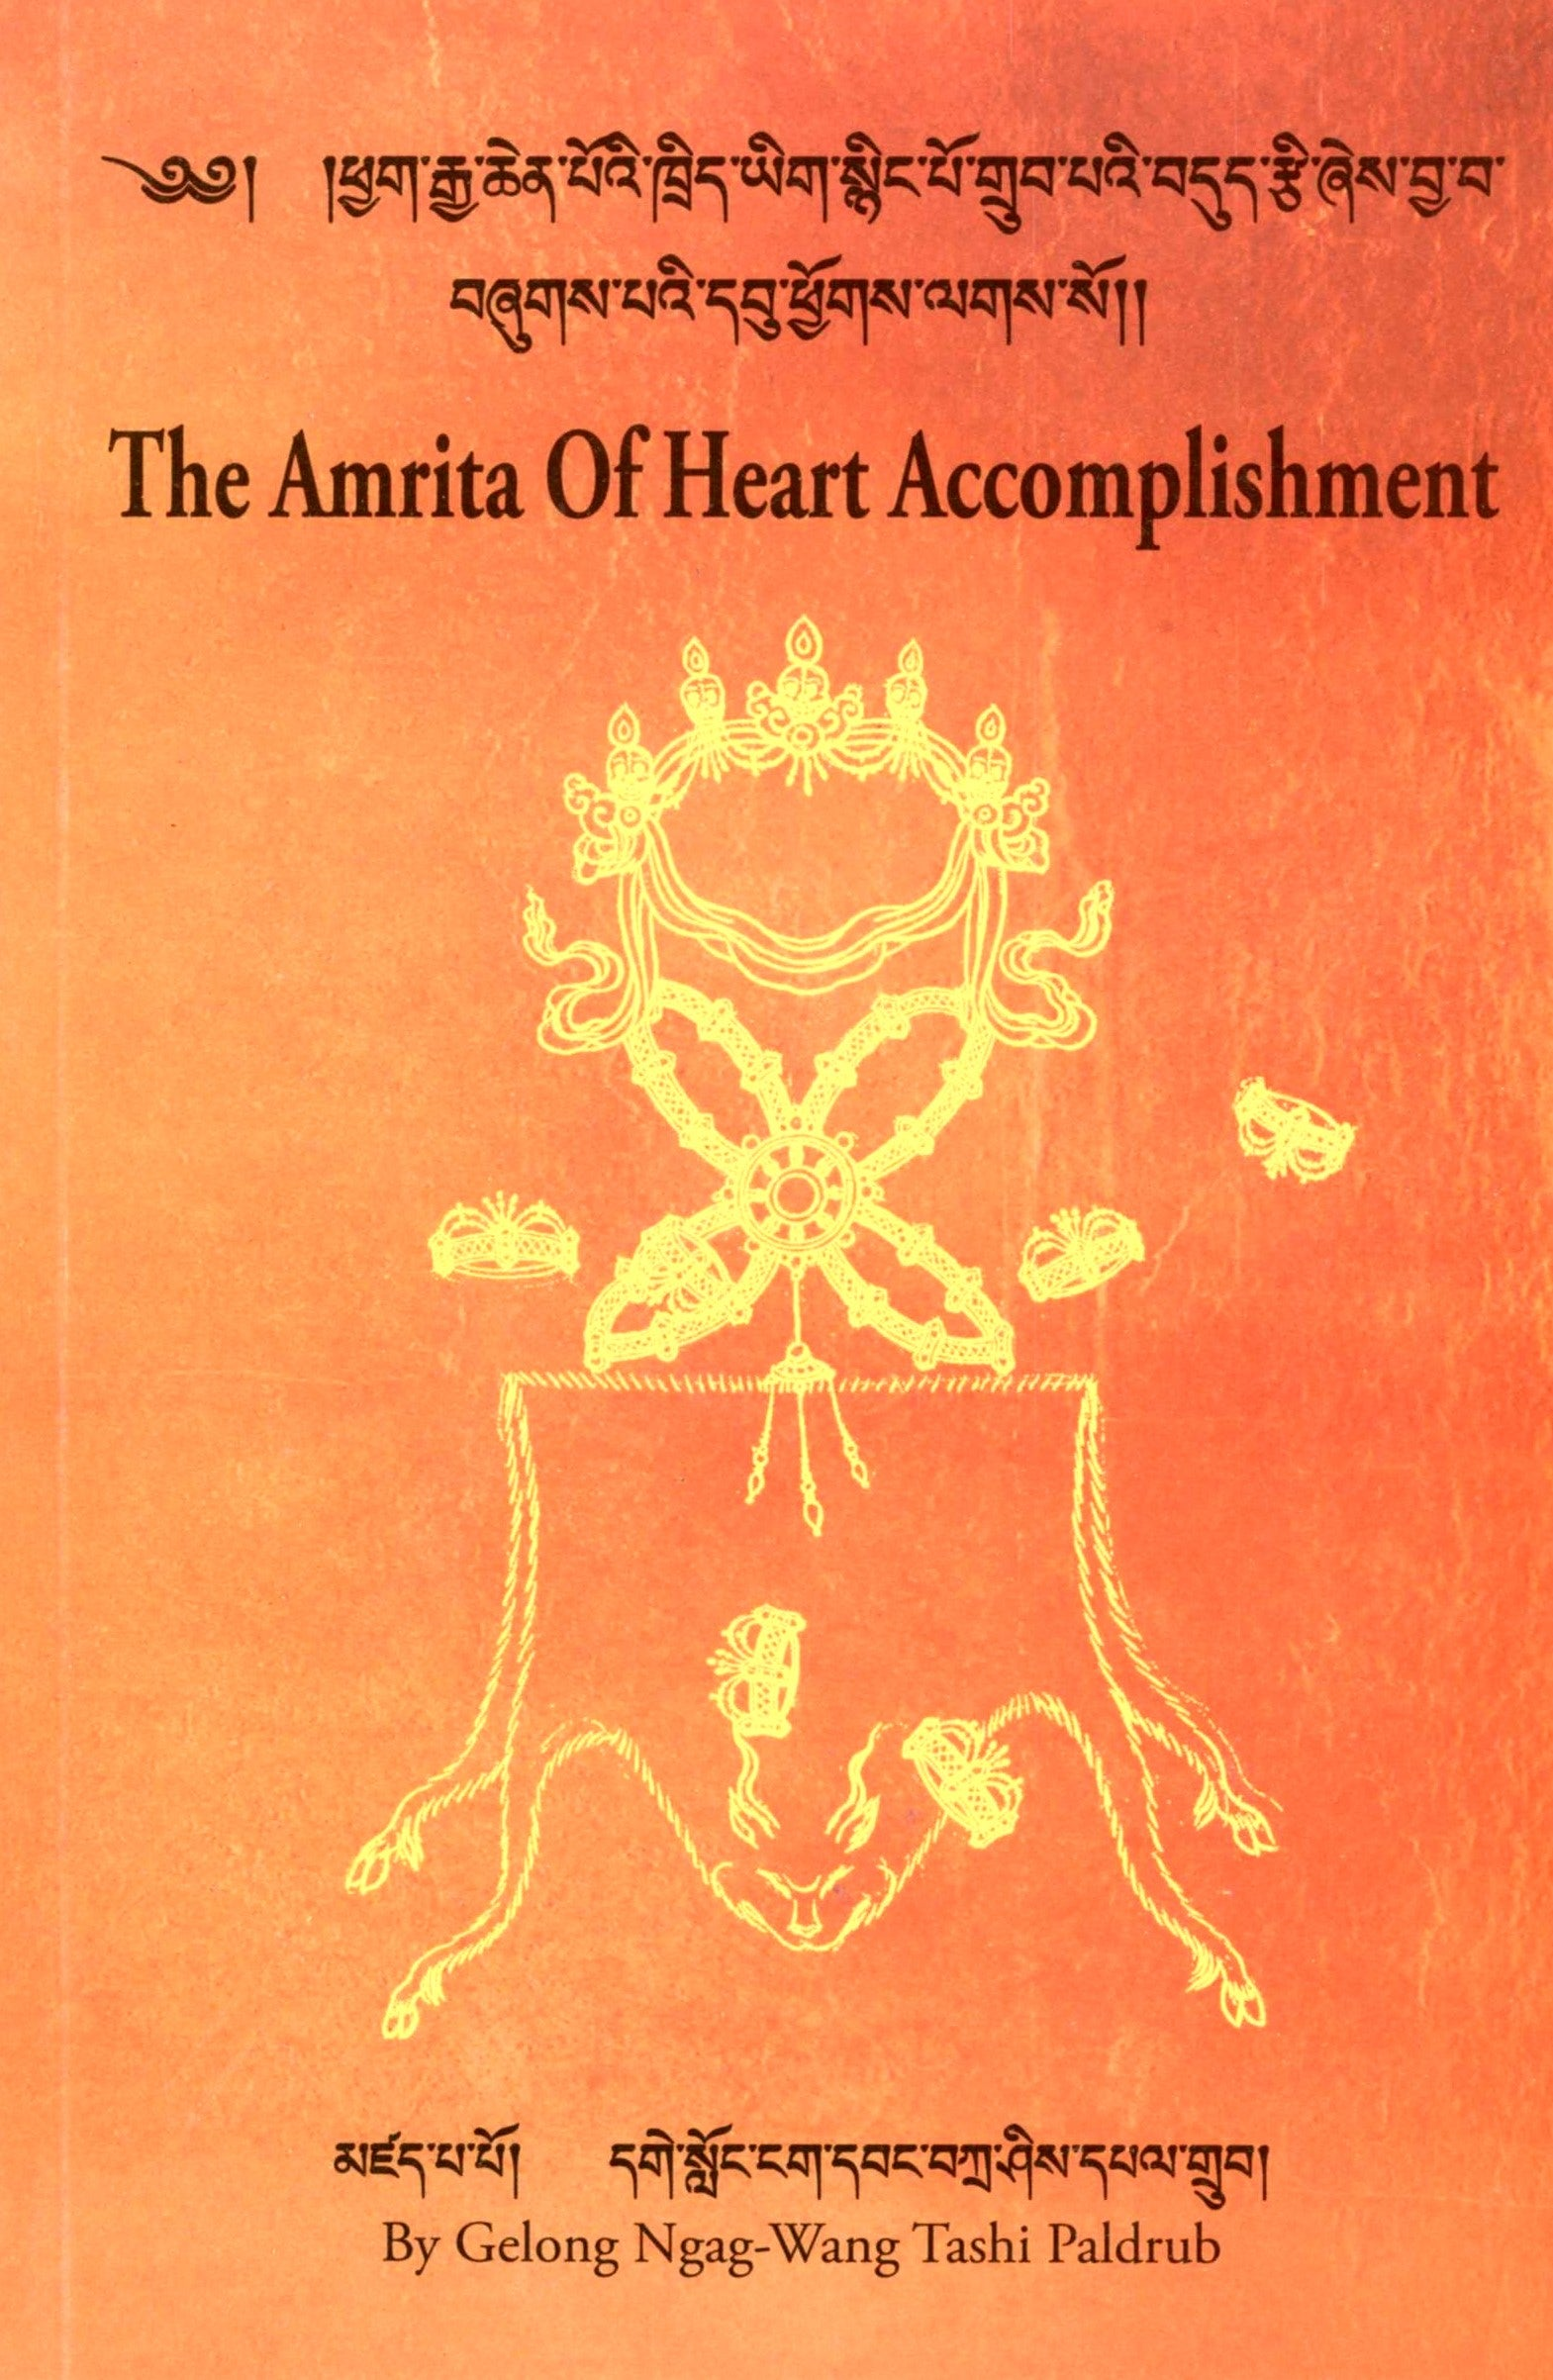 The Amrita Of Heart Accomplishment